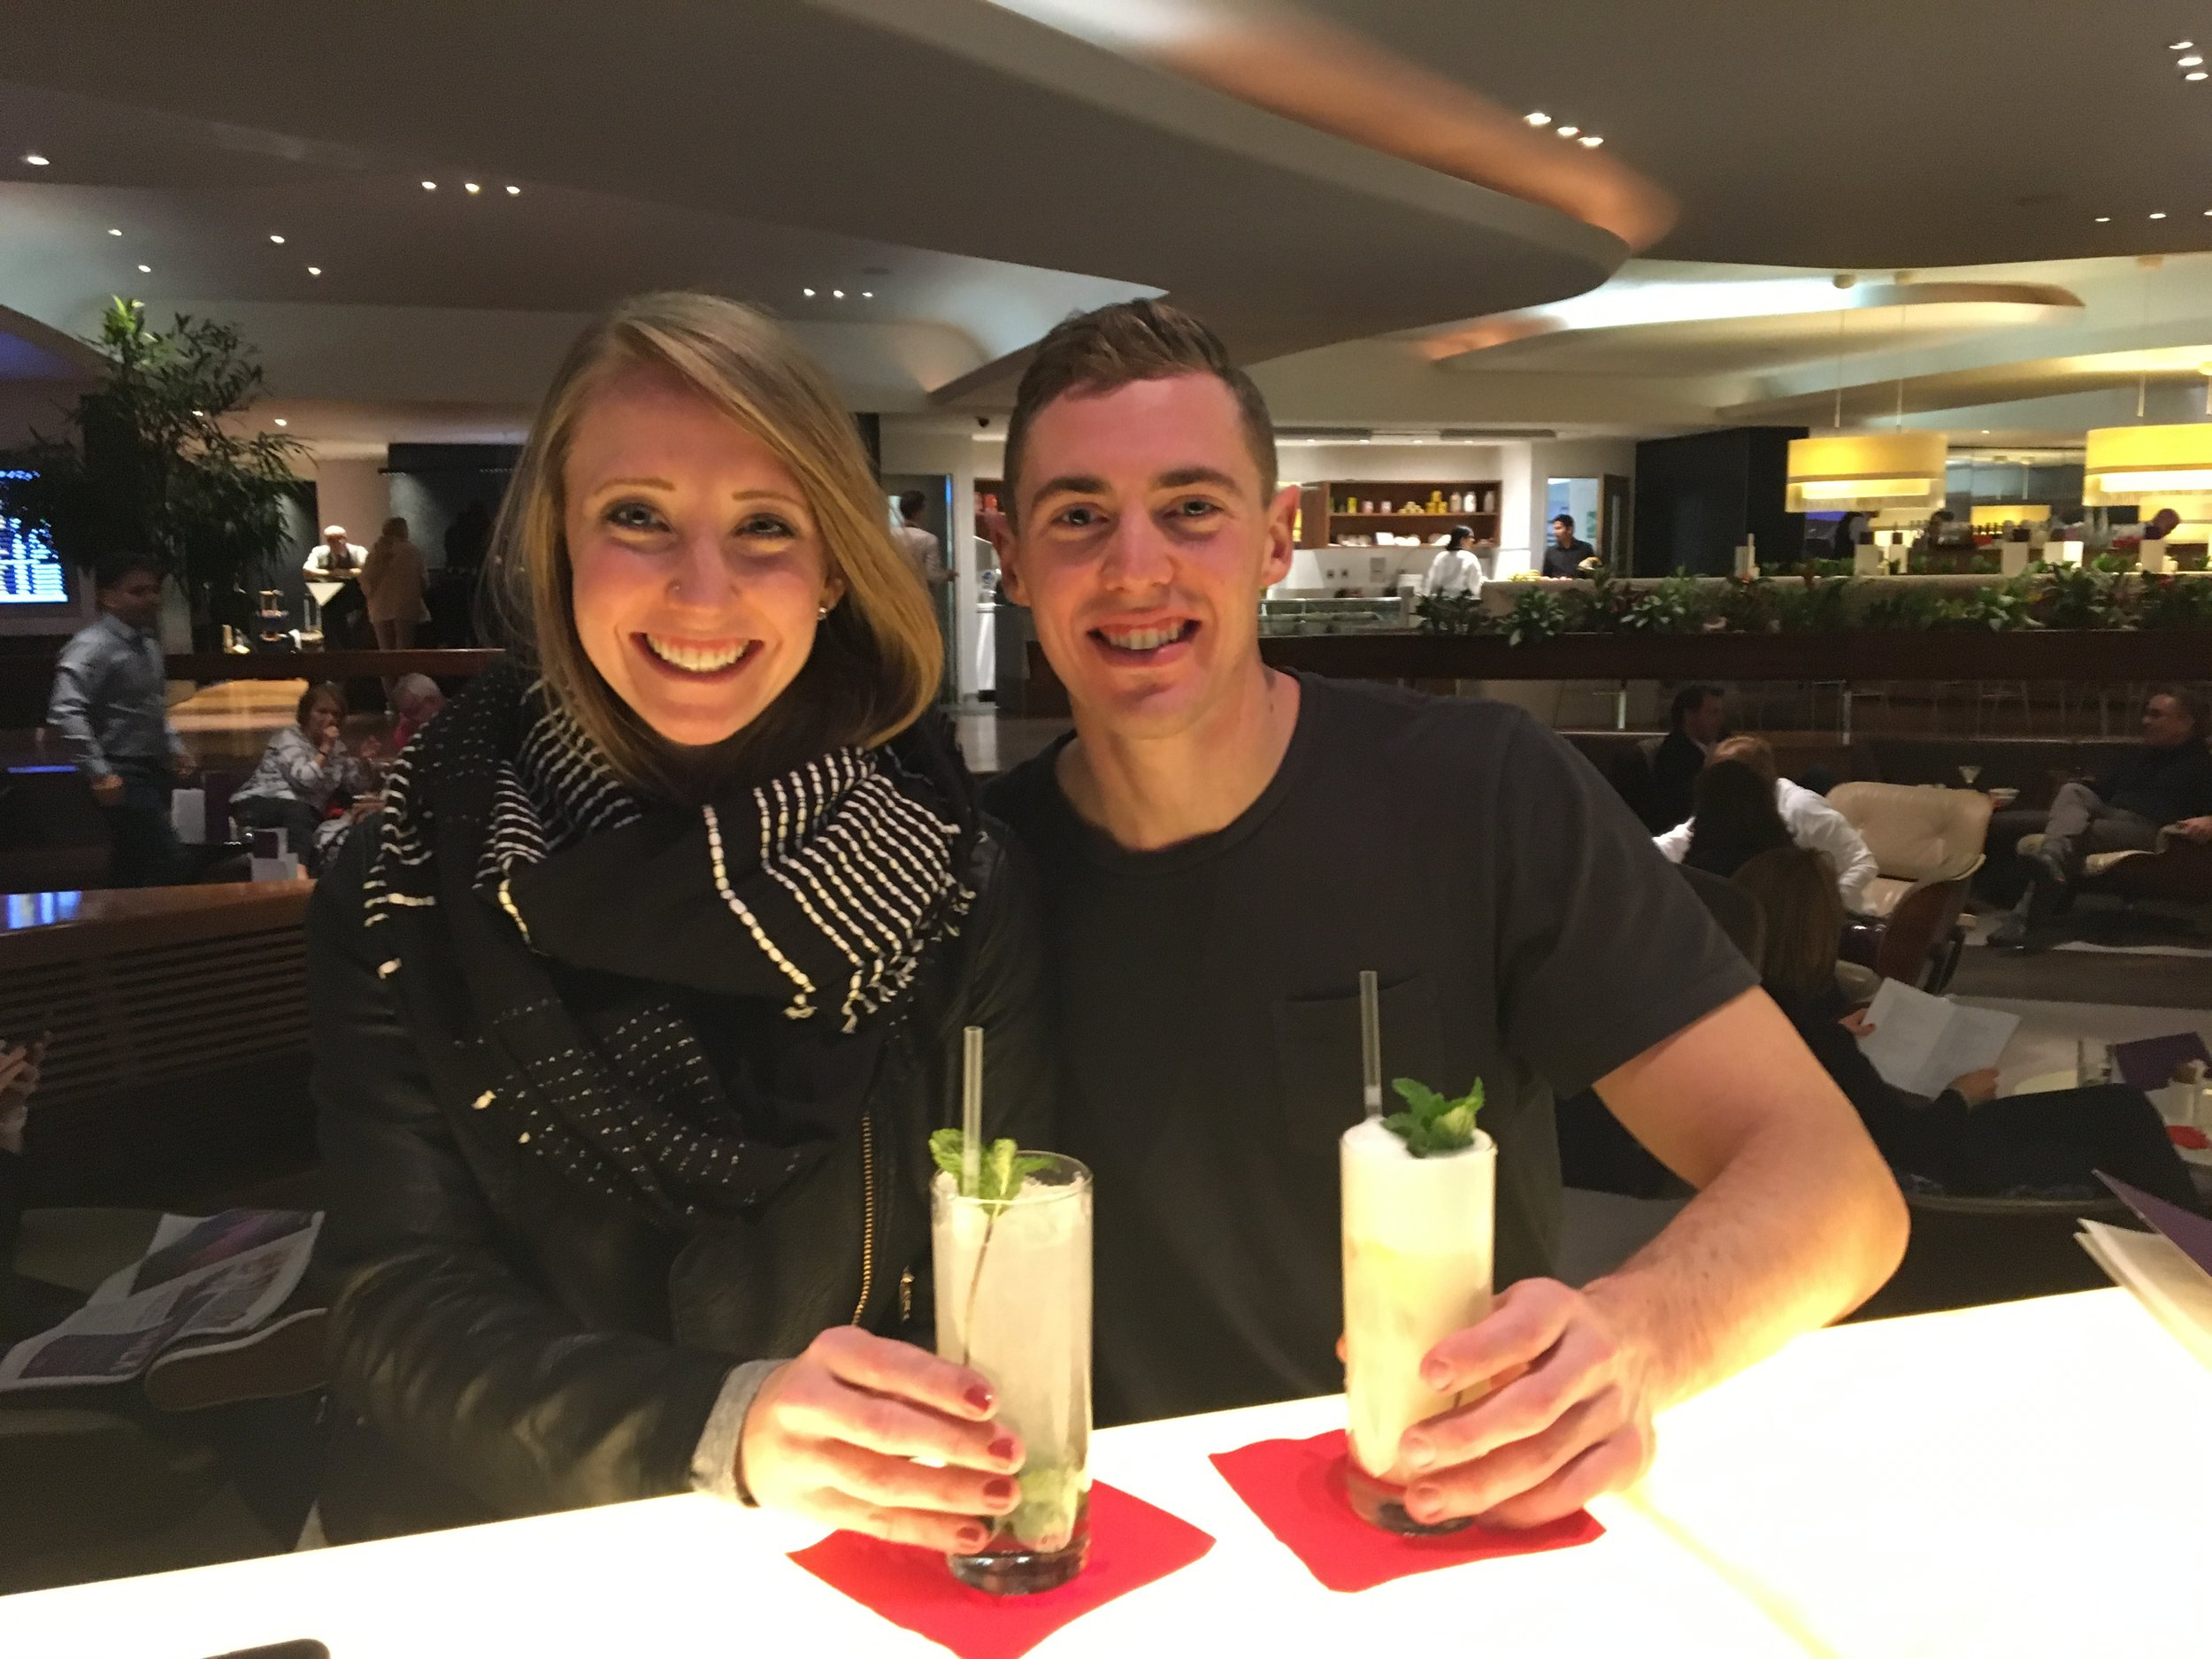 CHEERS FROM THE VIRGIN ATLANTIC CLUBHOUSE BAR